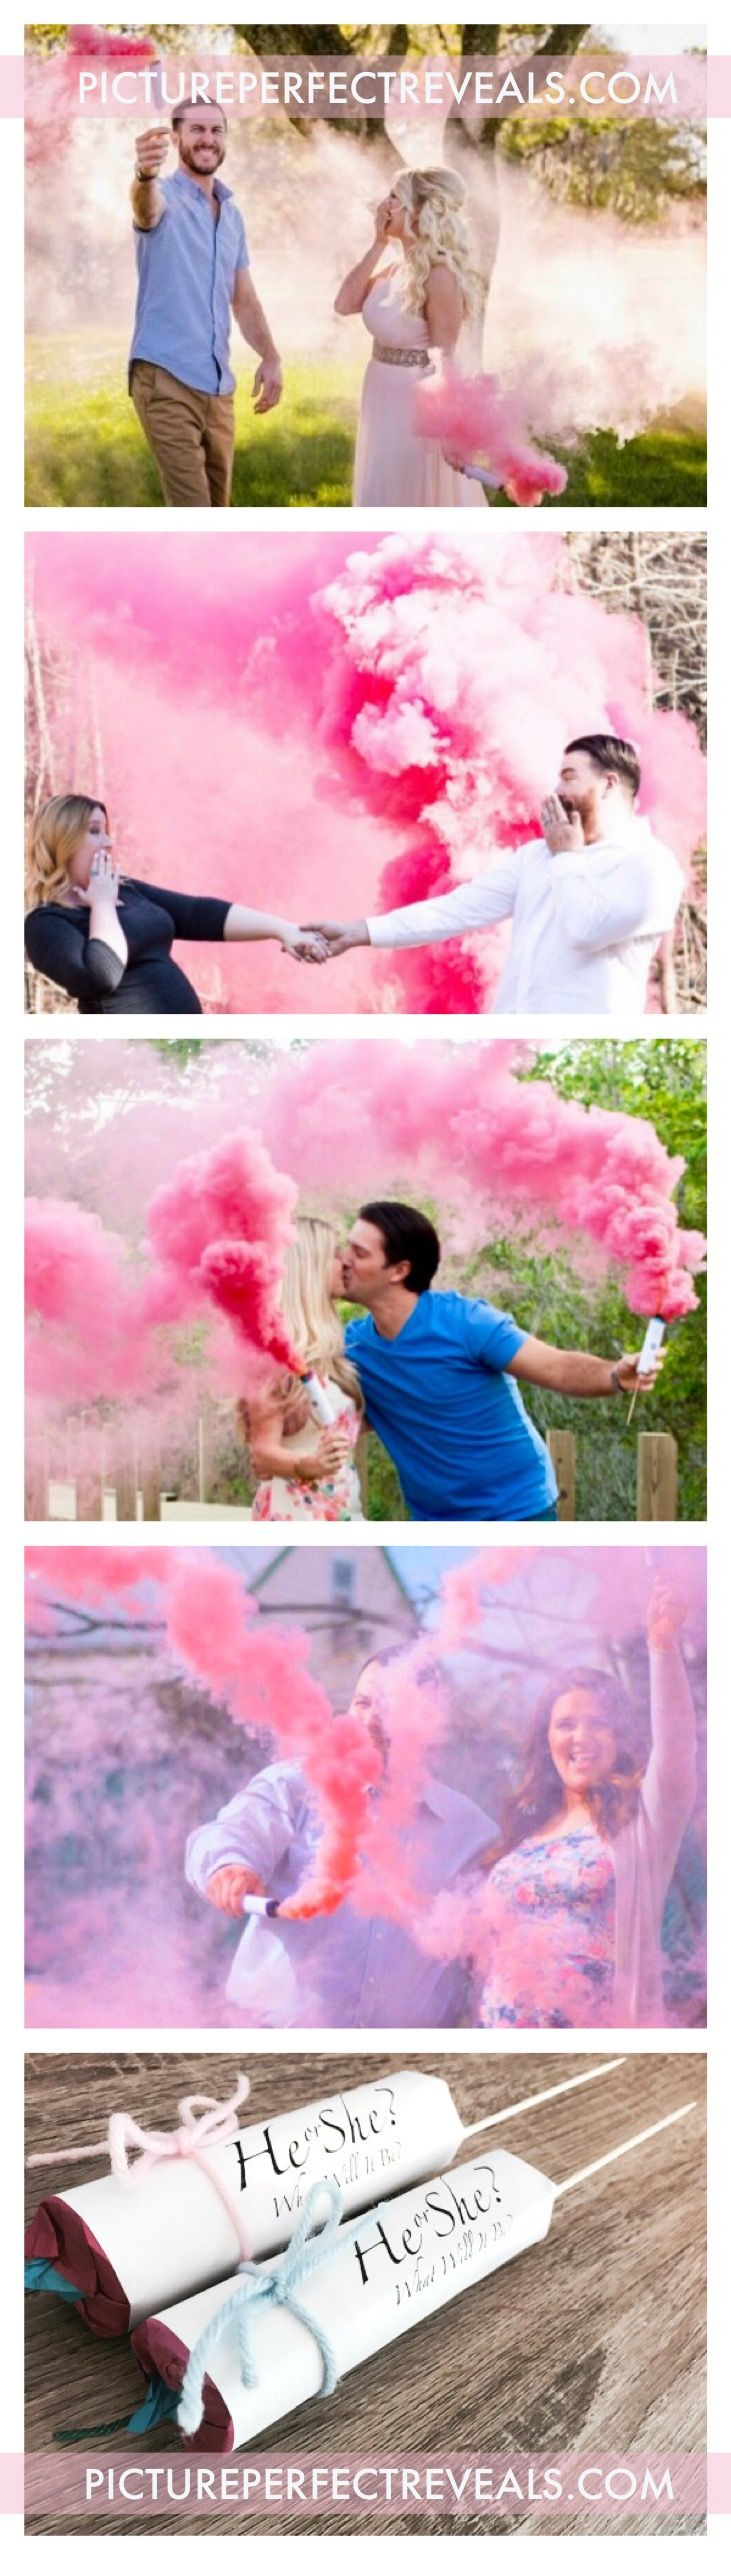 $3.95 Smoke Fountains with Bamboo Sticks for the Picture Perfect Gender Reveal!